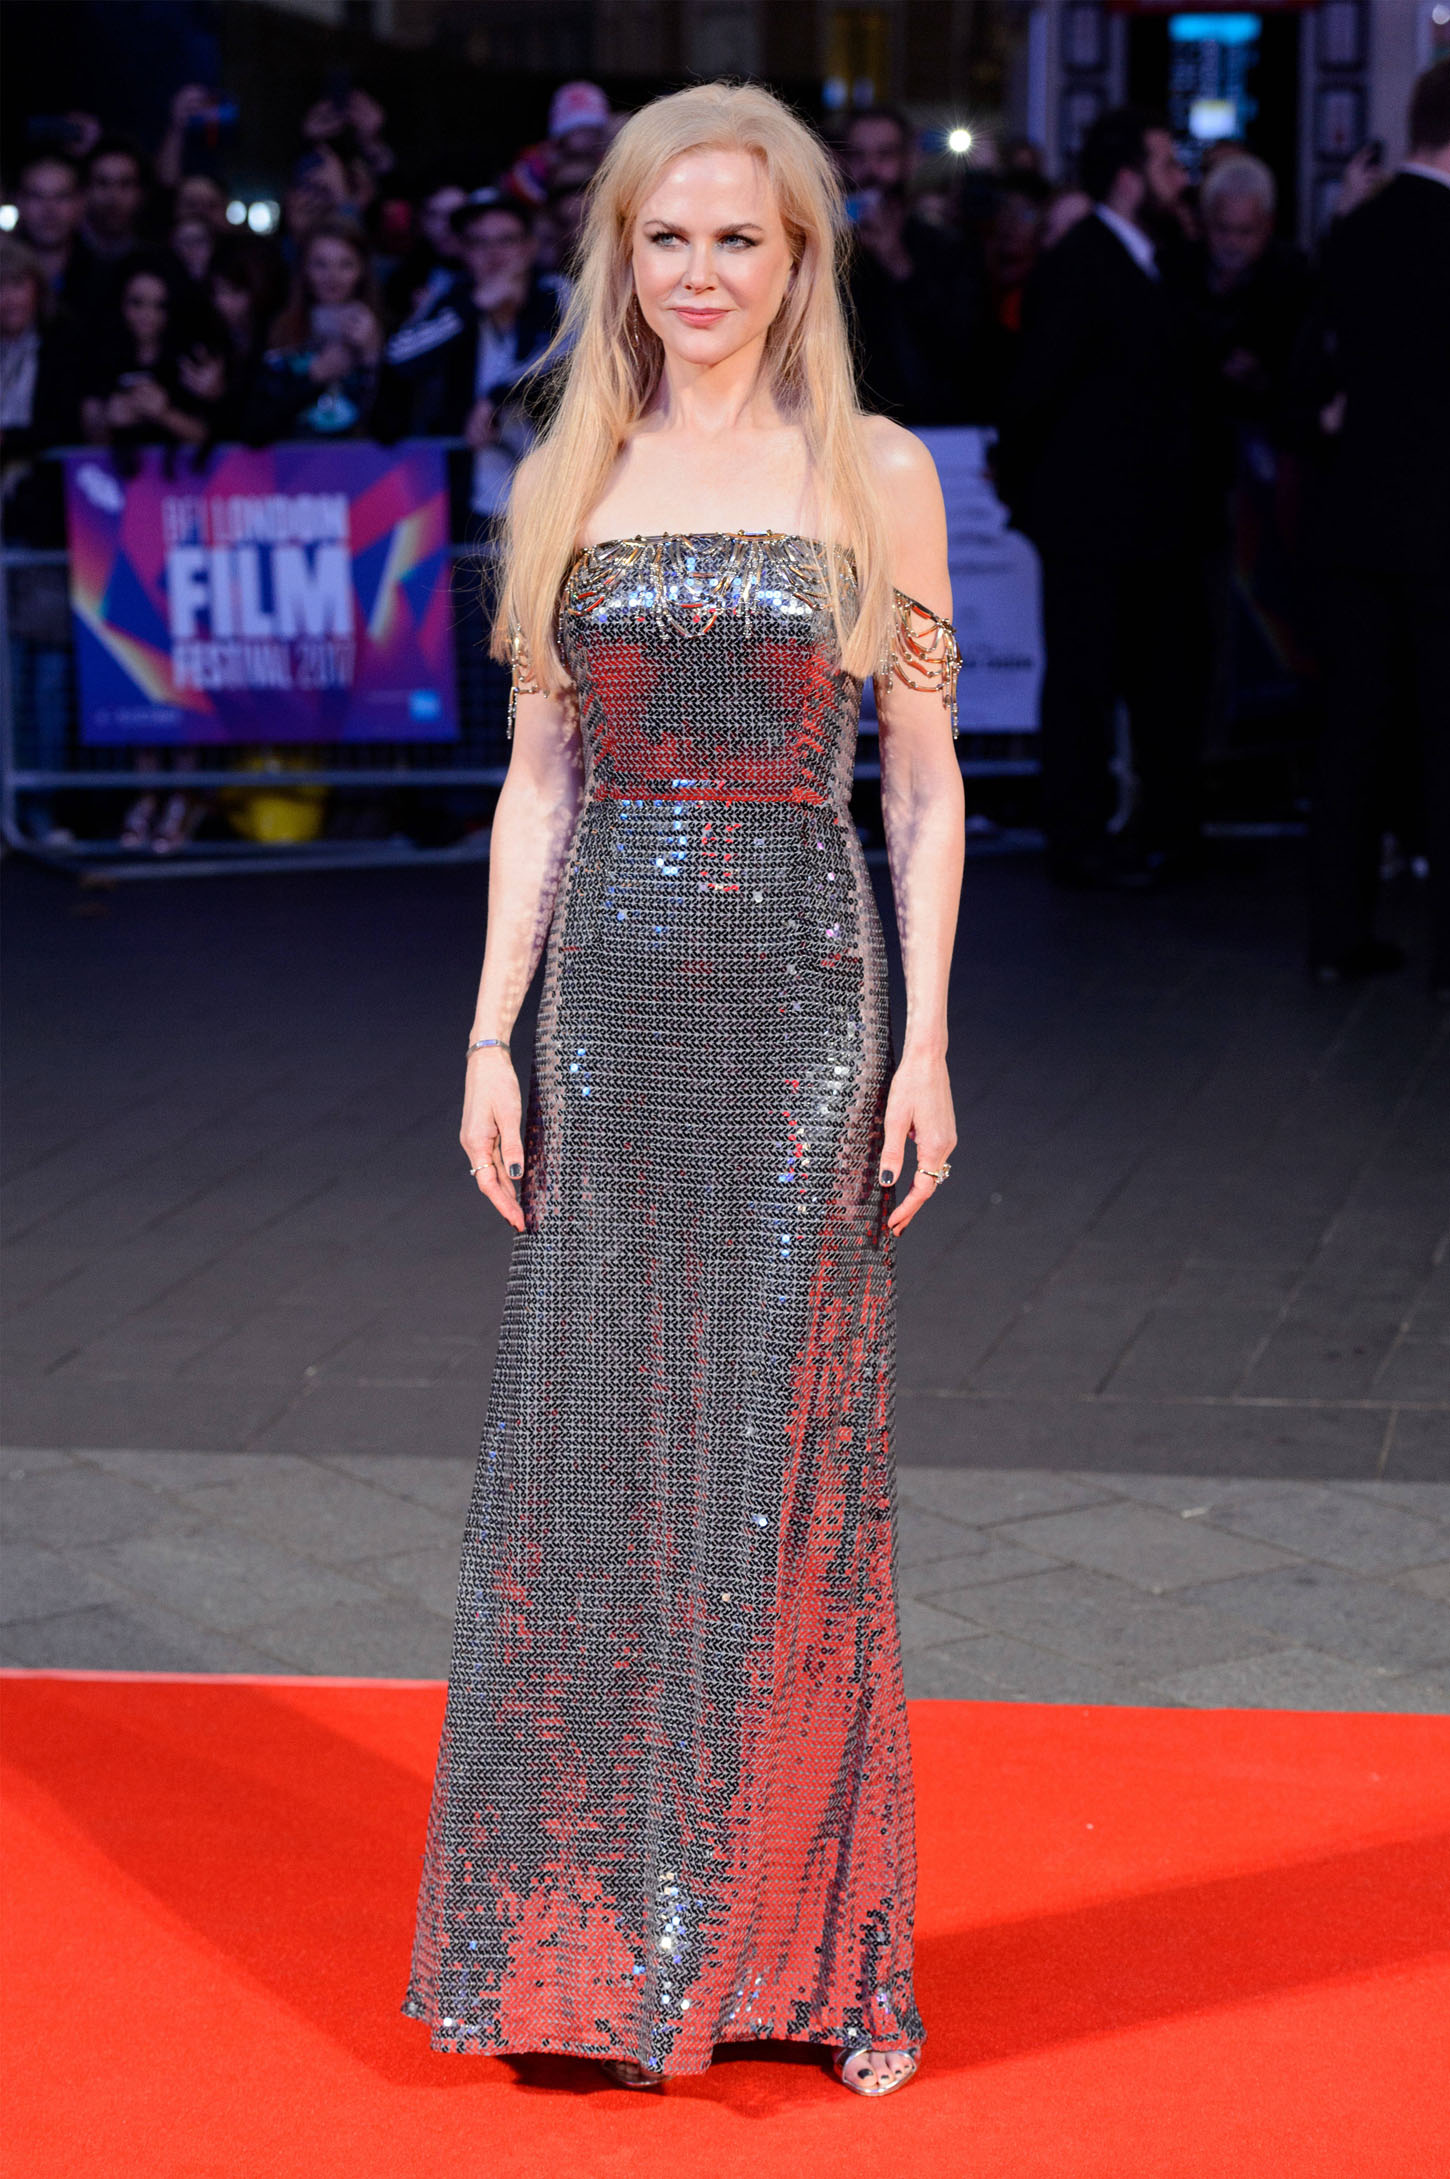 Stars attend the UK film premiere of Killing Of A Sacred Deer showing as part of the 51st BFI London Film Festival. <P> Pictured: Nicole Kidman <B>Ref: SPL1601196  121017  </B><BR/> Picture by: Ray Tang / ZUMA Press / Splash News<BR/> </P><P> <B>Splash News and Pictures</B><BR/> Los Angeles:310-821-2666<BR/> New York:212-619-2666<BR/> London:870-934-2666<BR/> <span id=